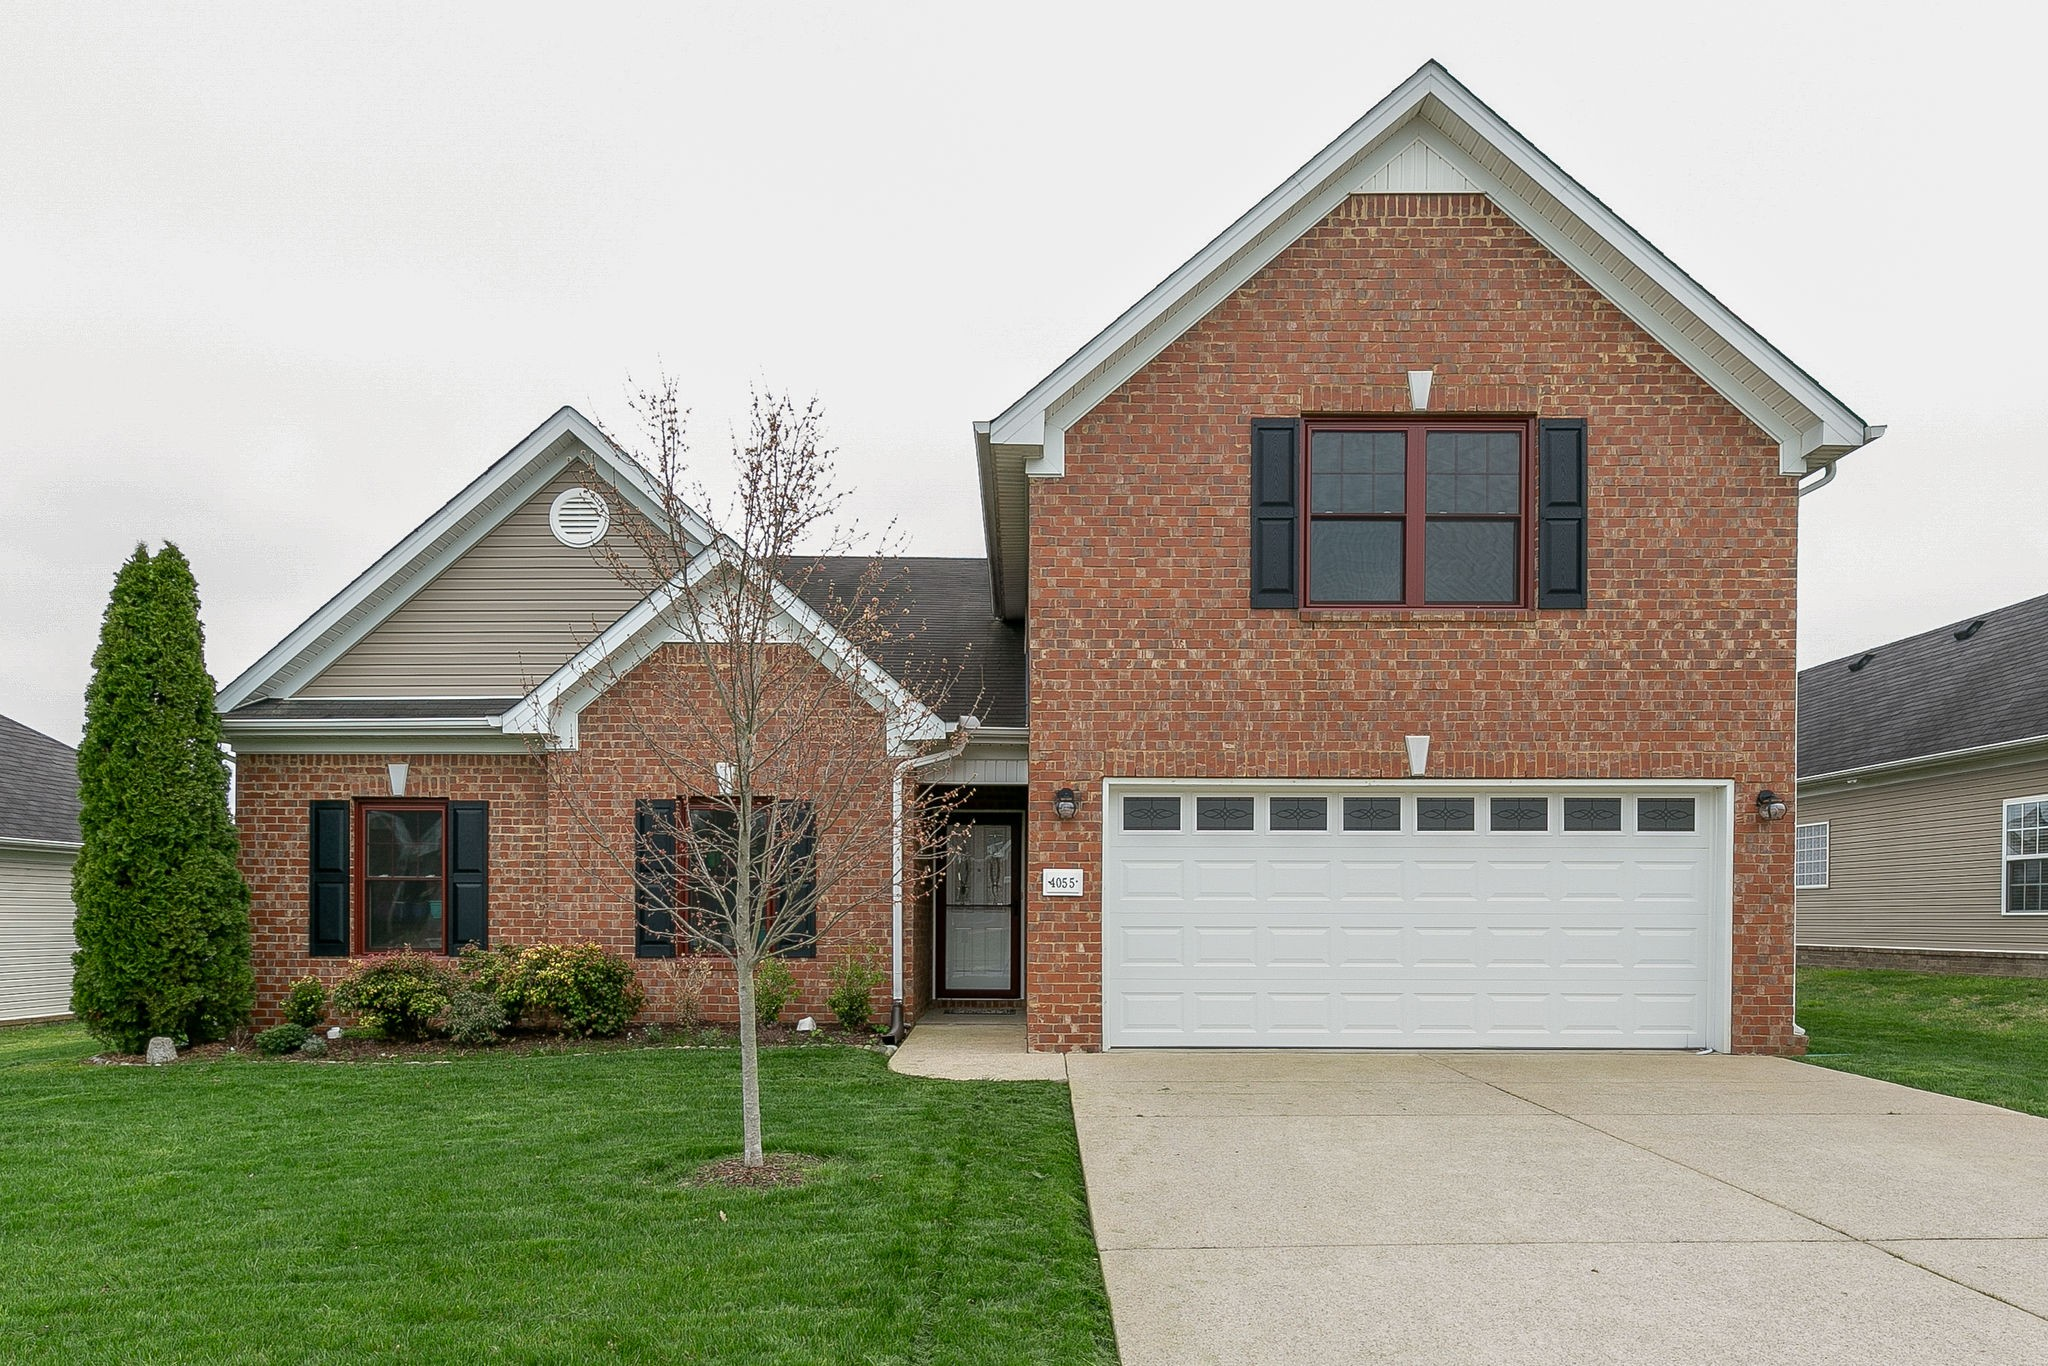 4055 Sequoia Trl, Spring Hill, Tennessee